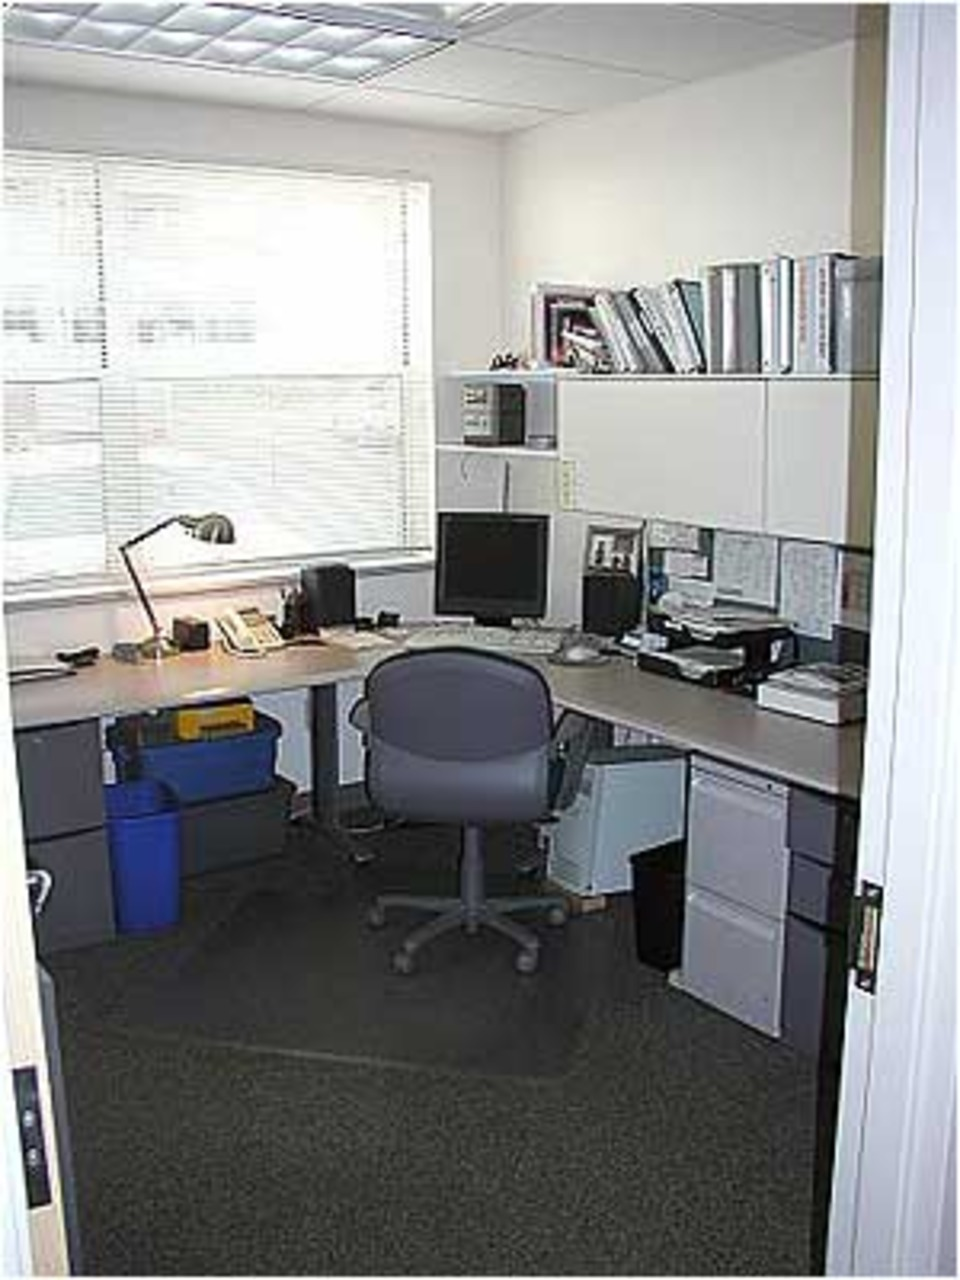 The Administrative Work Area Is Located Centrally Between The Offices And  Is The Primary Storage Area For Administrative Supplies.